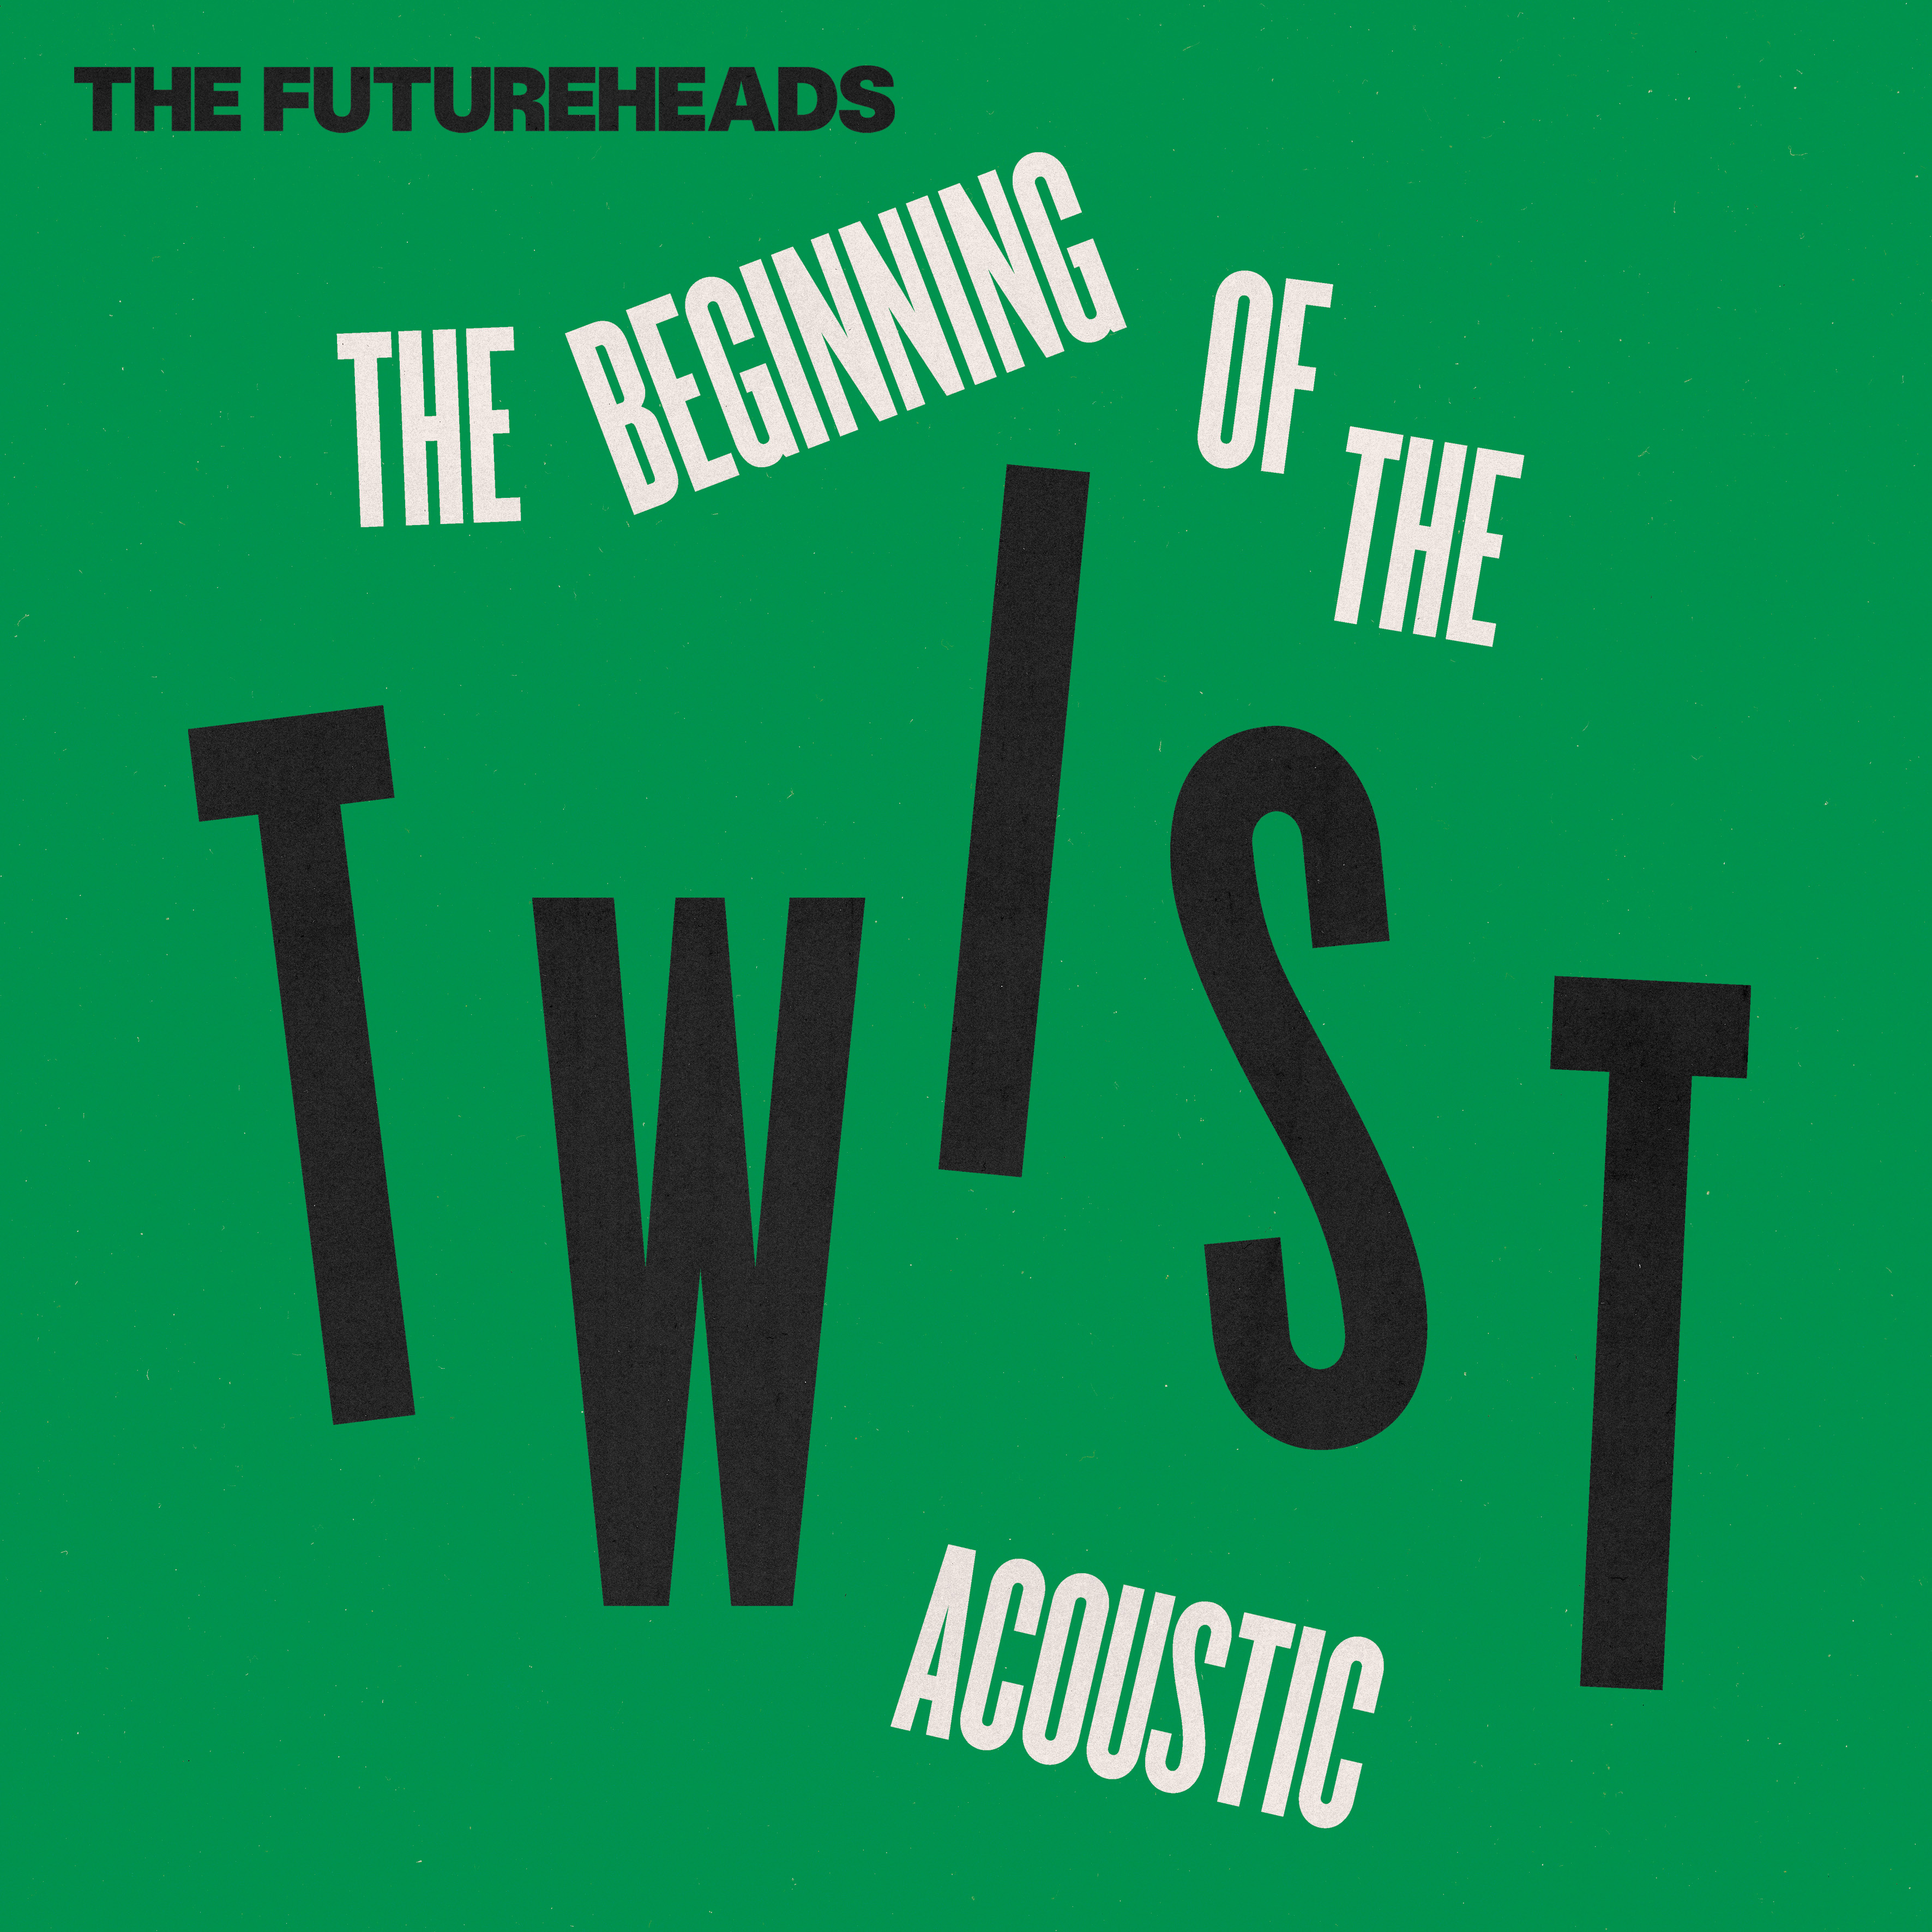 The Futureheads The Beginning Of The Twist Acoustic